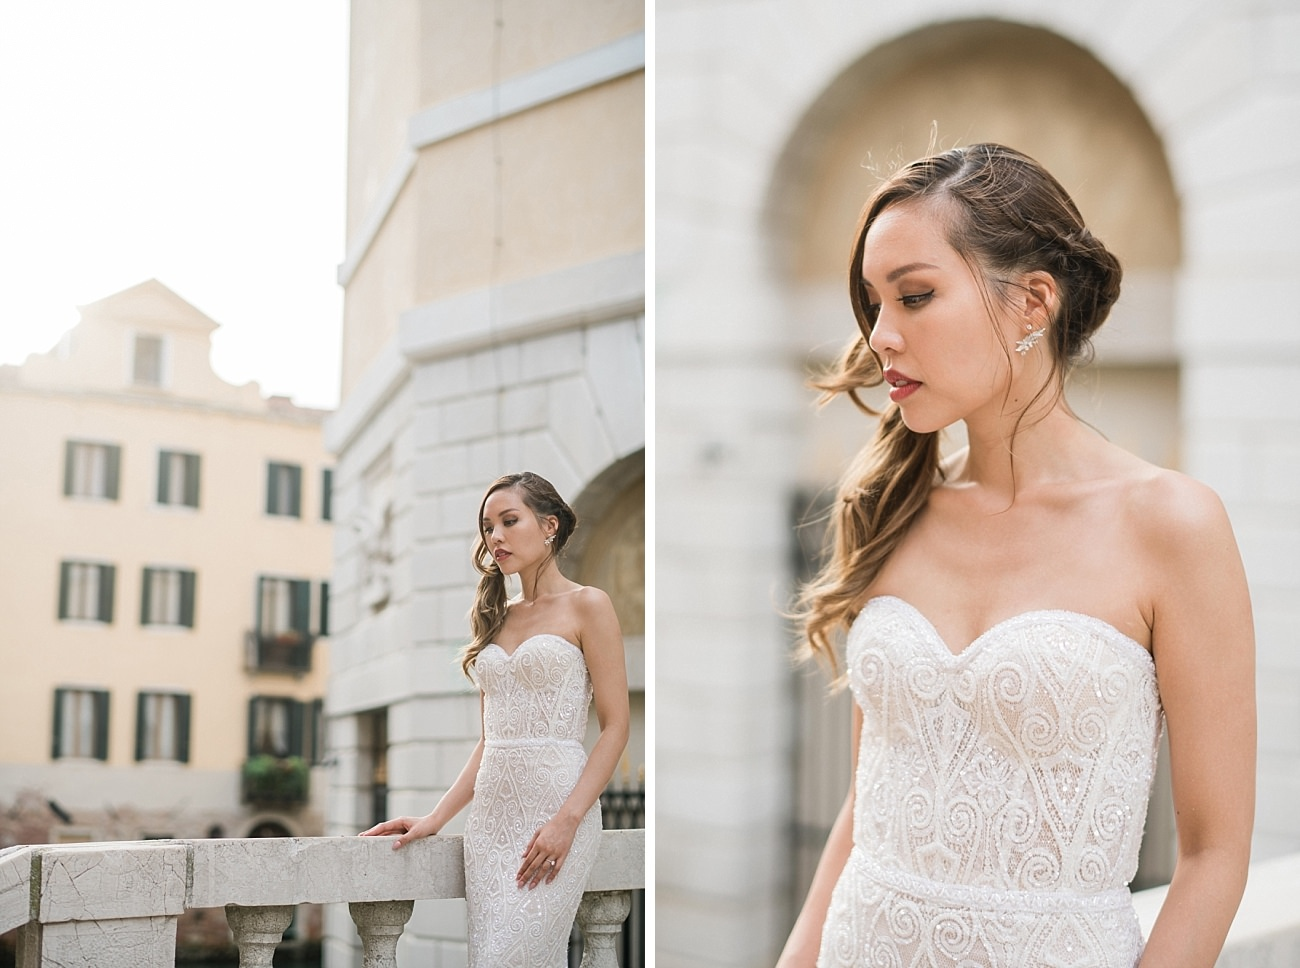 All about the Romance / Wedding Photography Venice Italy